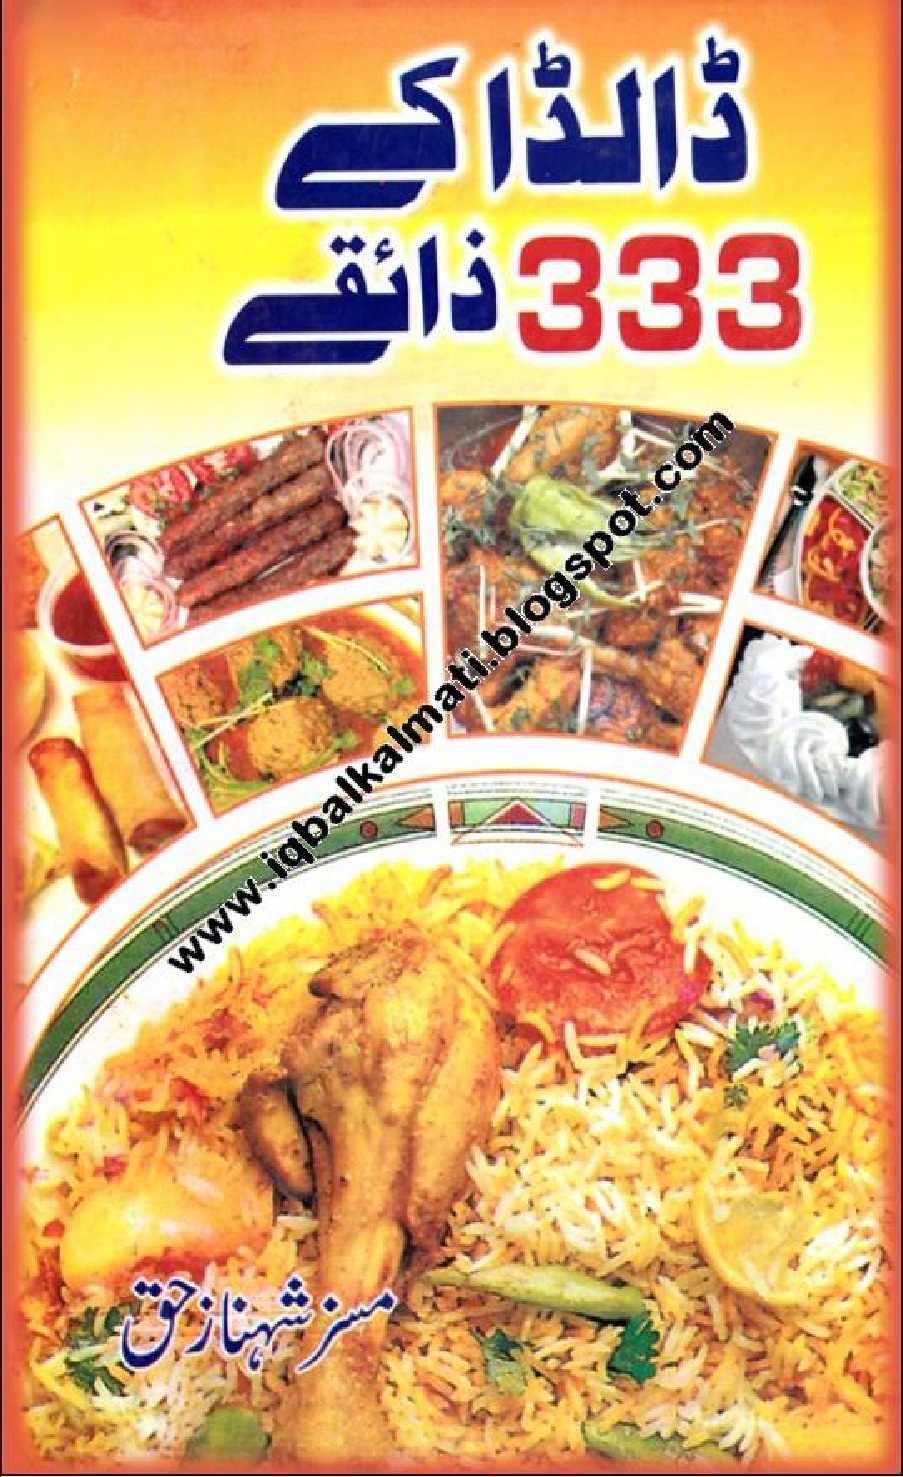 Cooking books bookspk dalda ke 333 zaiqey urdu recipes books forumfinder Choice Image